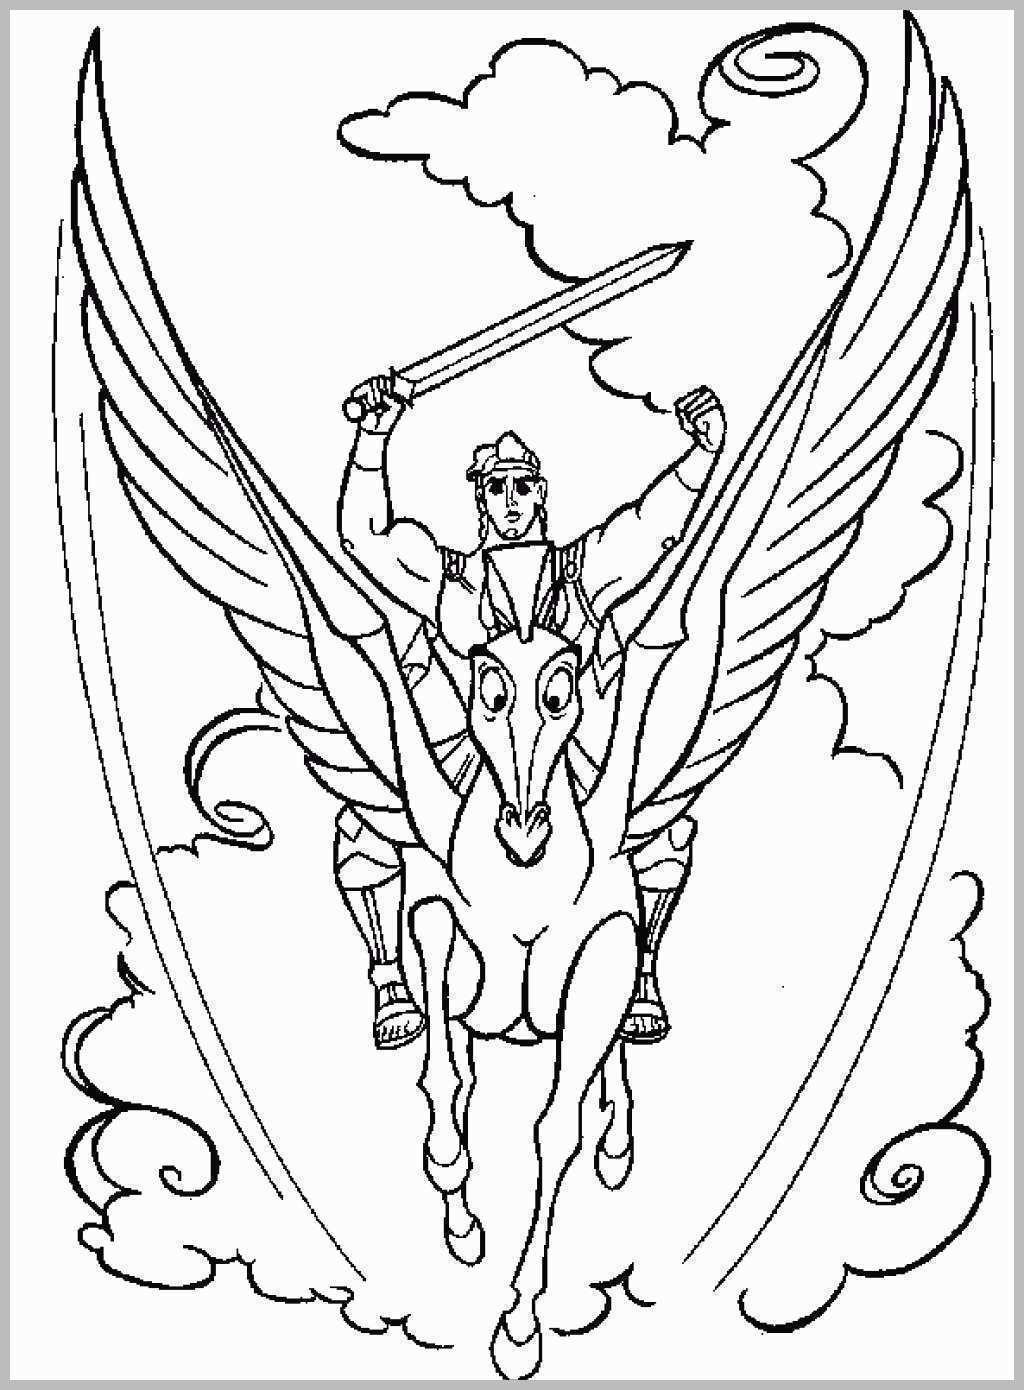 Coloring Pages To Color Online For Free Coloring Pages To Color Online For Free Fresh Get This Printable